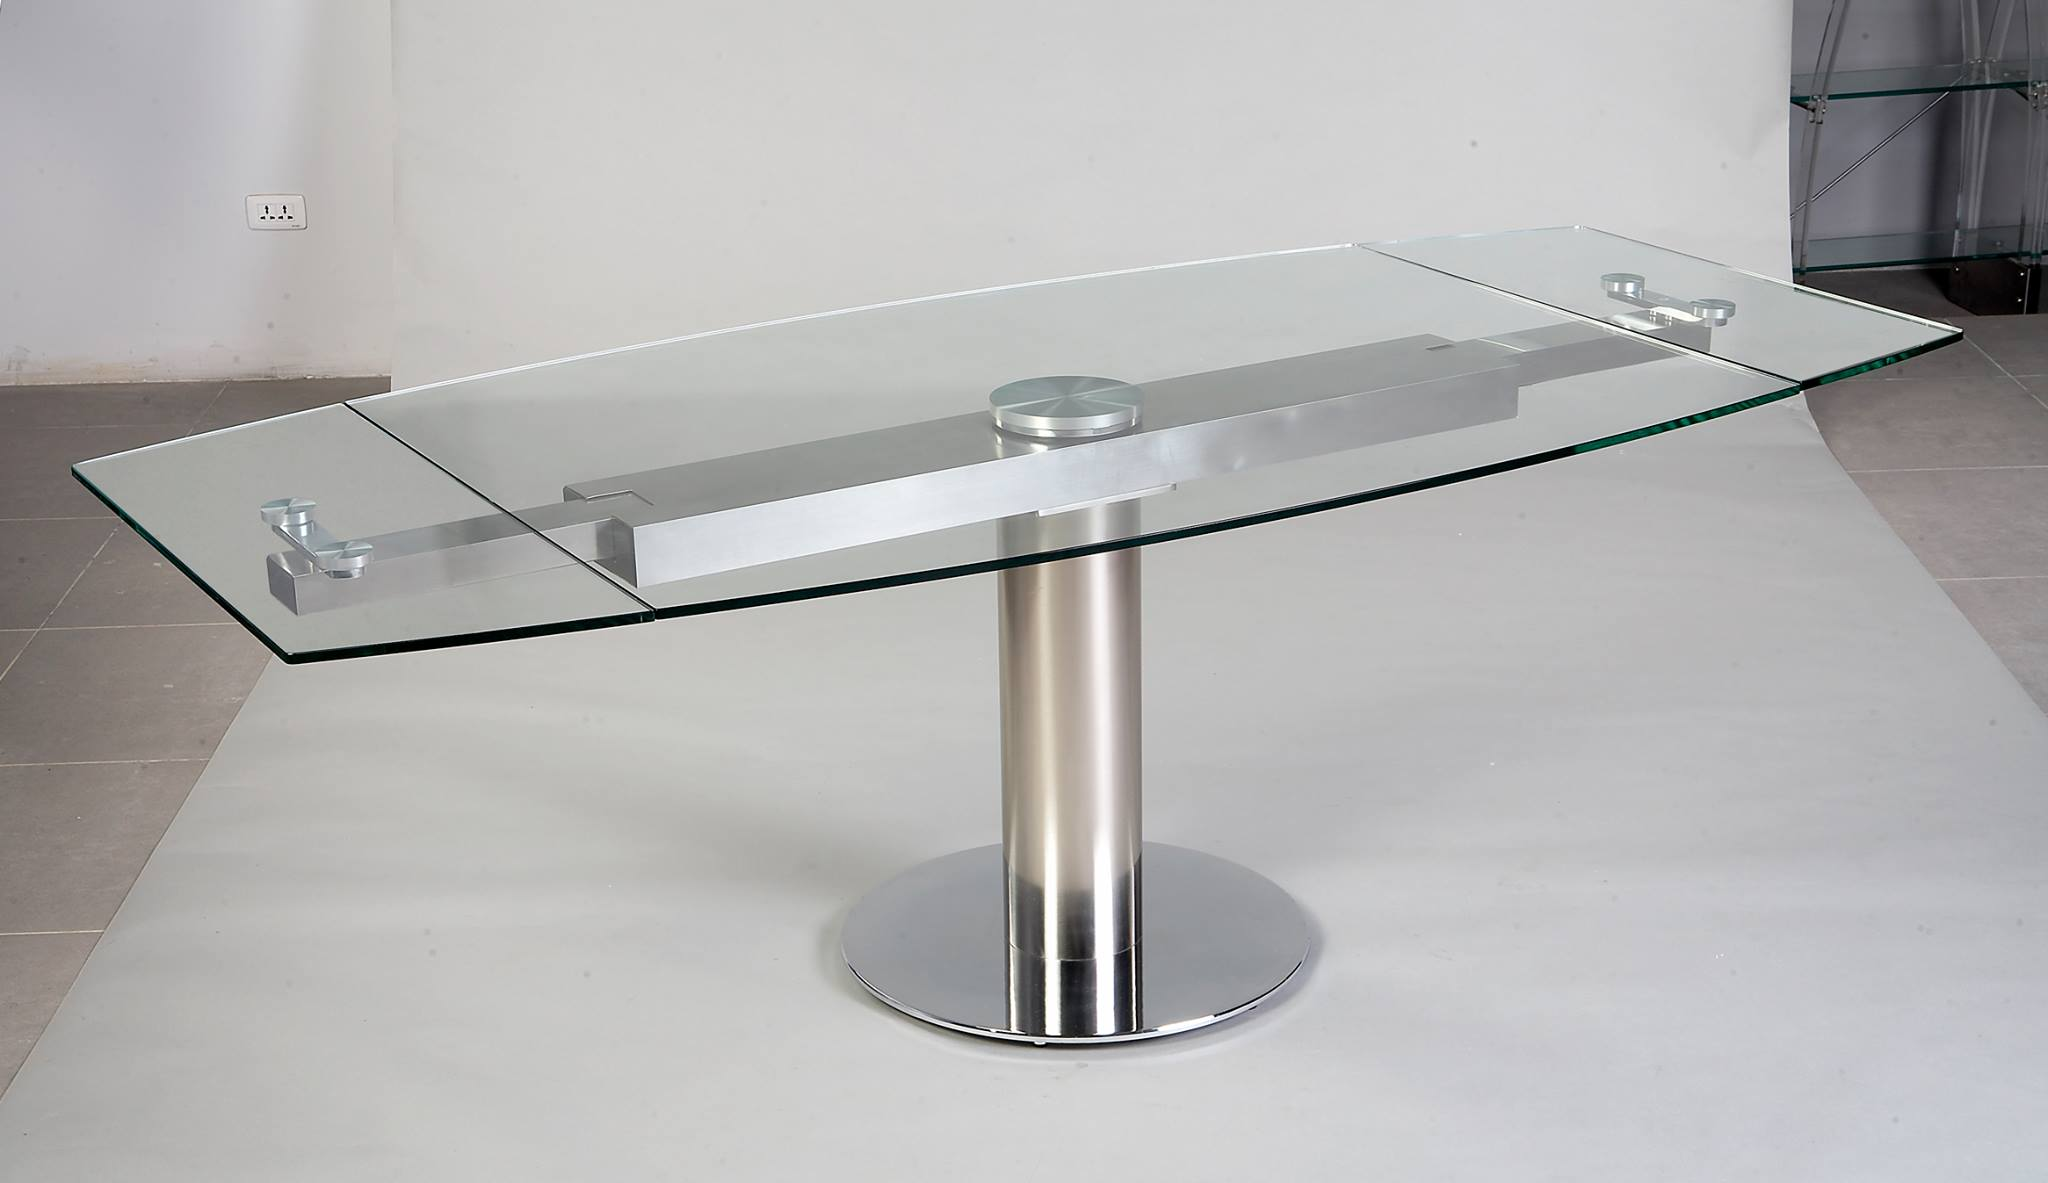 Table verre pied central allonge for Table de cuisine en verre trempe